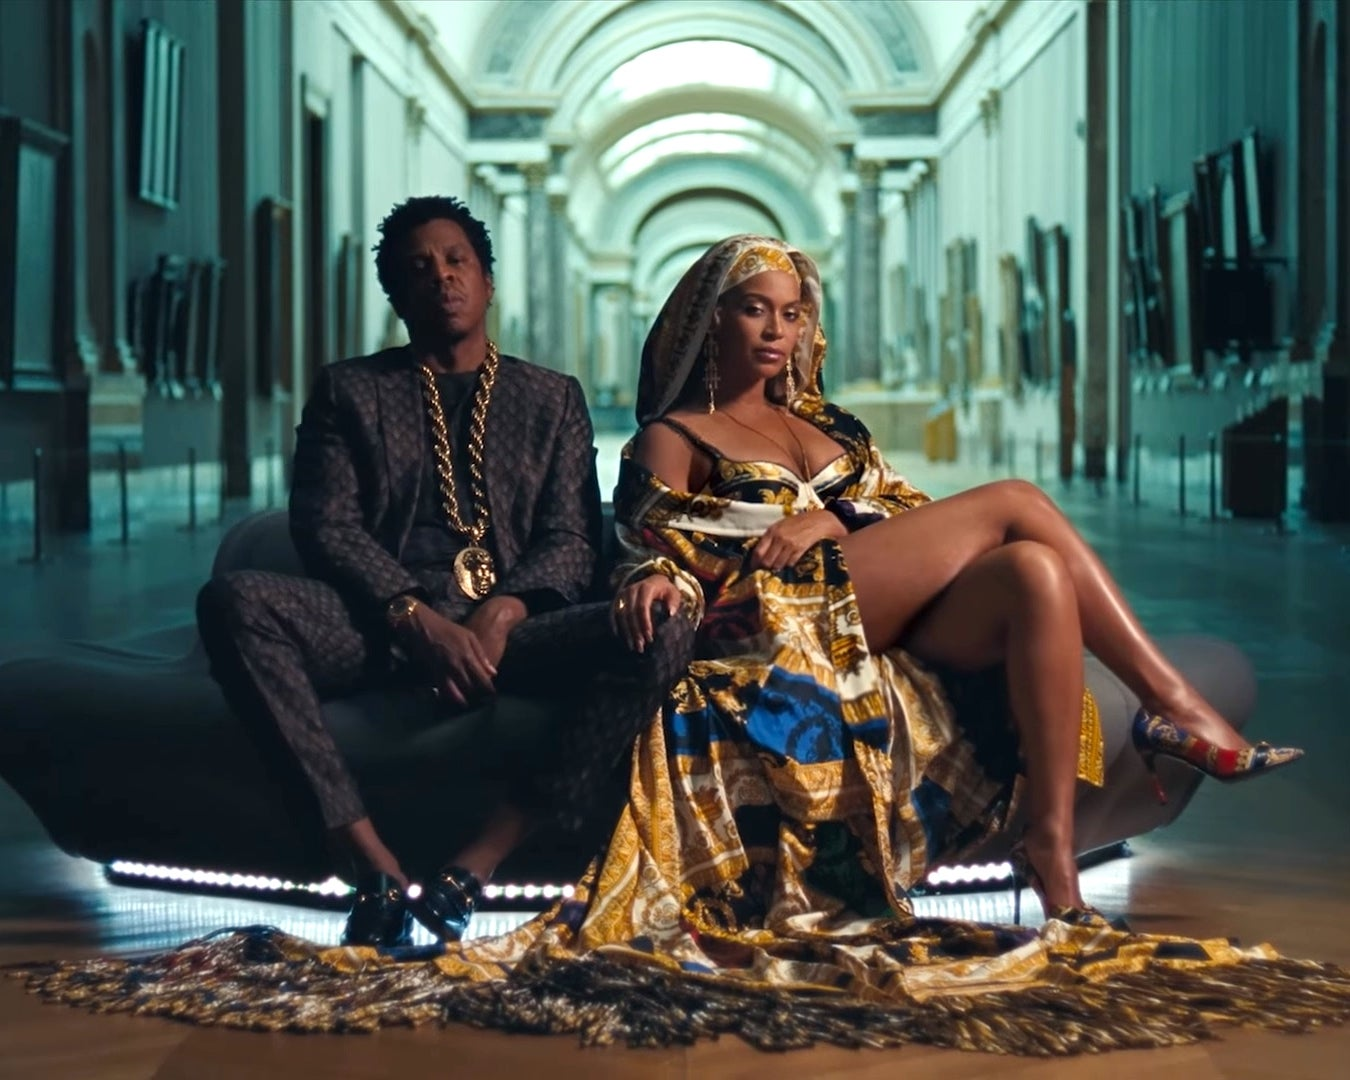 Beyoncé and Jay-Z Helped The Louvre Reach A Record Number Of Visitors Last Year